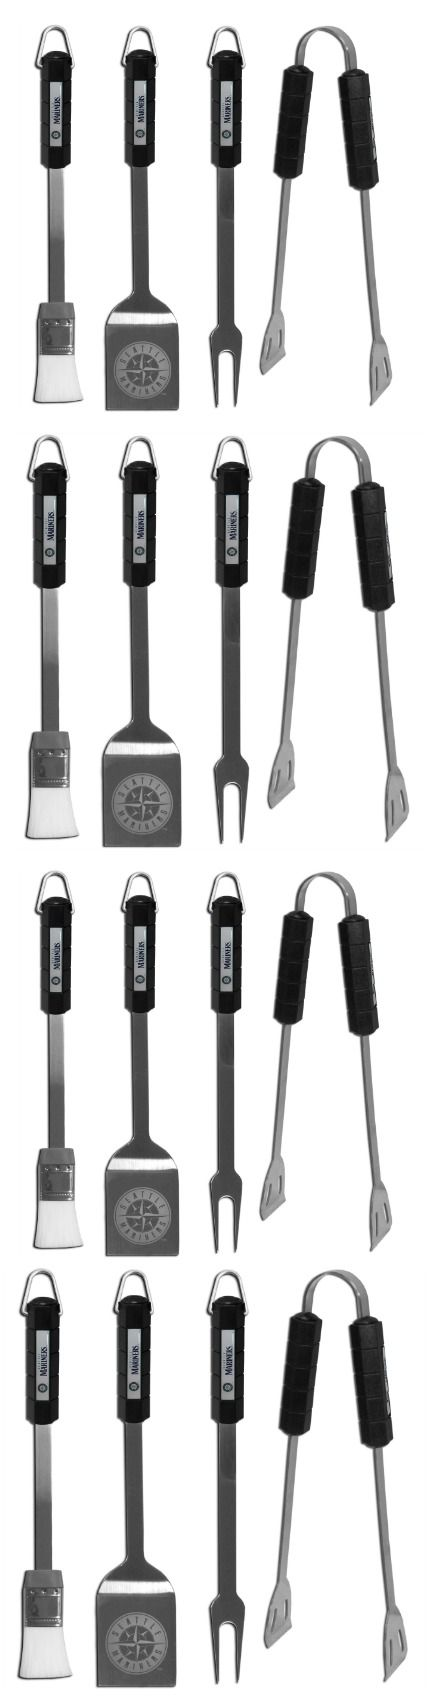 Seattle Mariners 4 pc BBQ Set! Click The Image To Buy It Now or Tag Someone You Want To Buy This For. #SeattleMariners